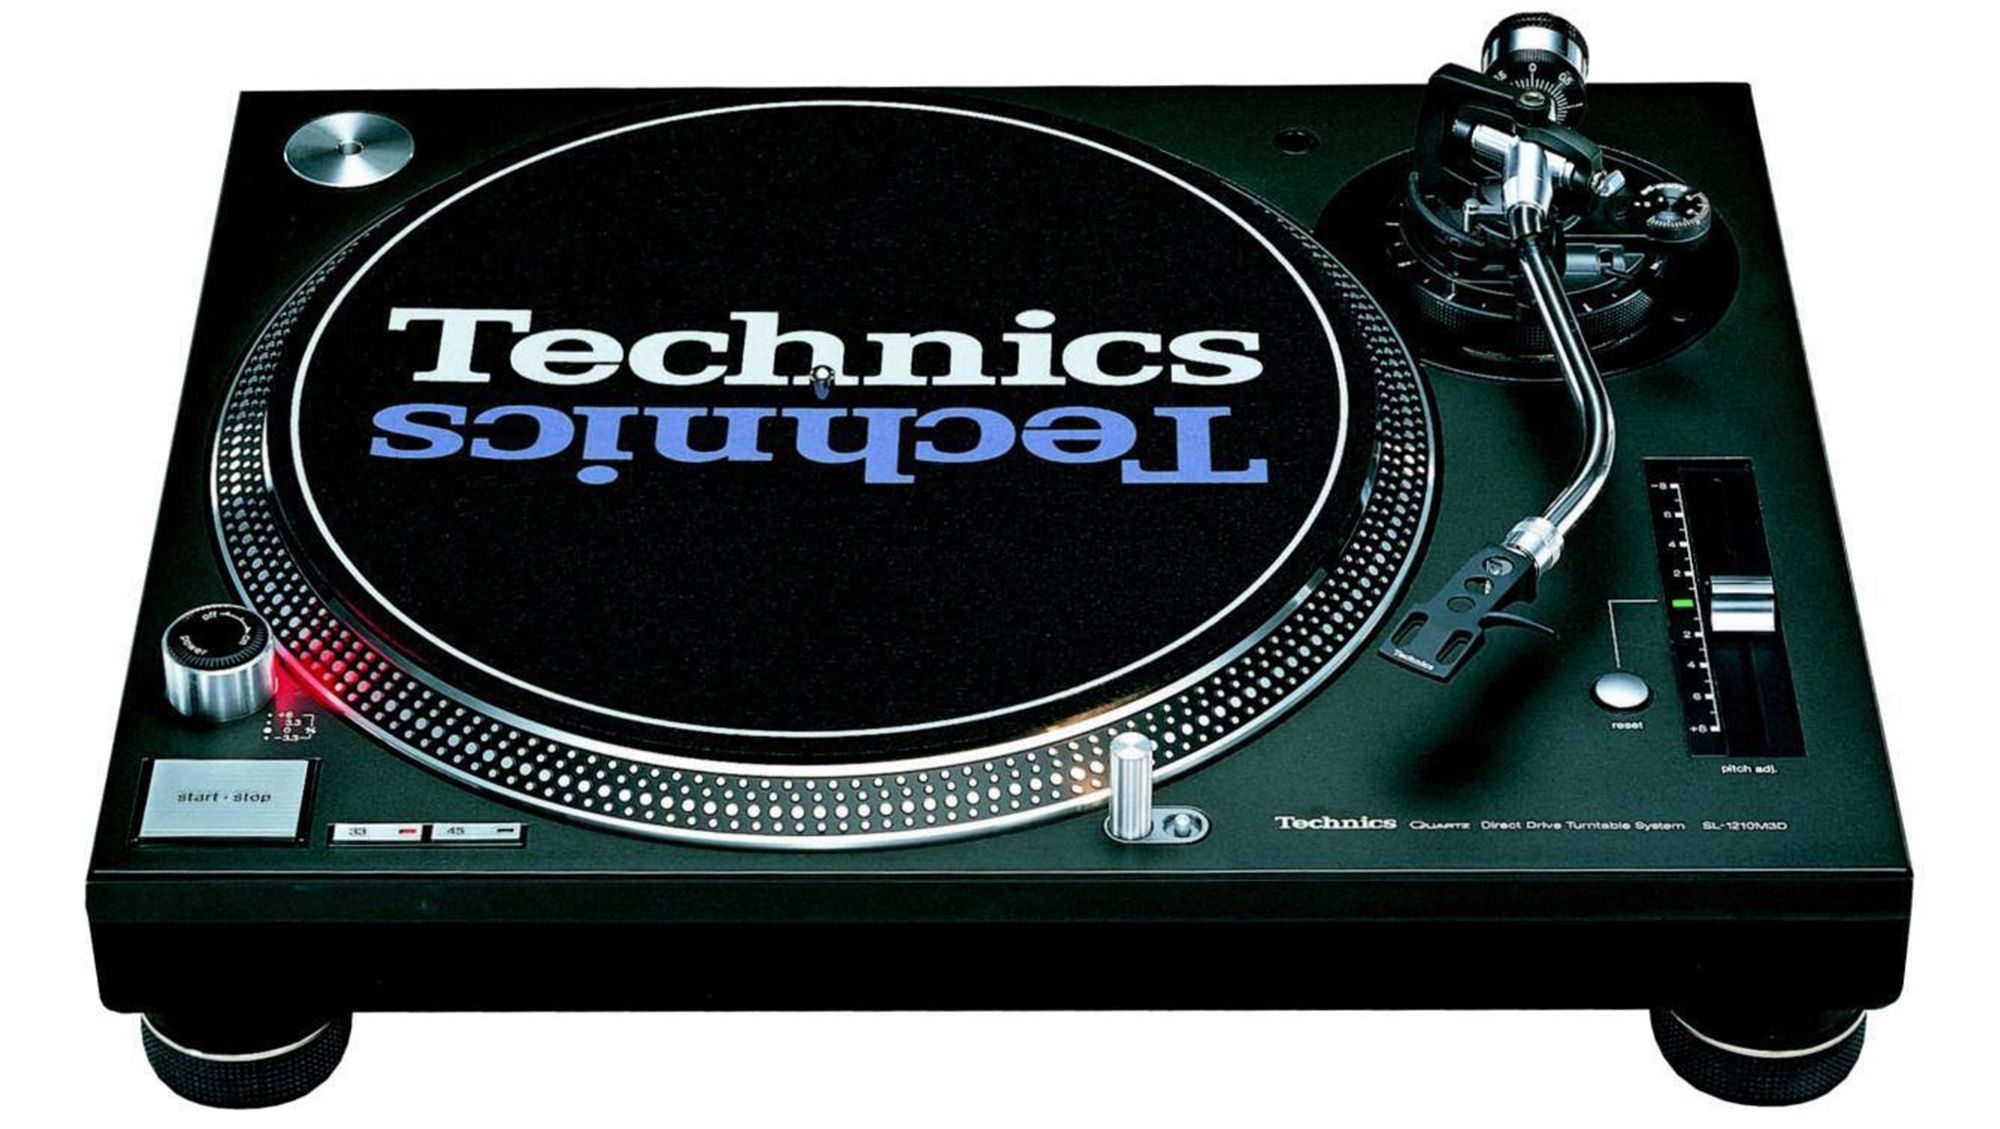 Technics SL-1210MK5 rel;eased in 2002. Essentially the same at the SL-1200MKS except in matte black finish & voltage switch